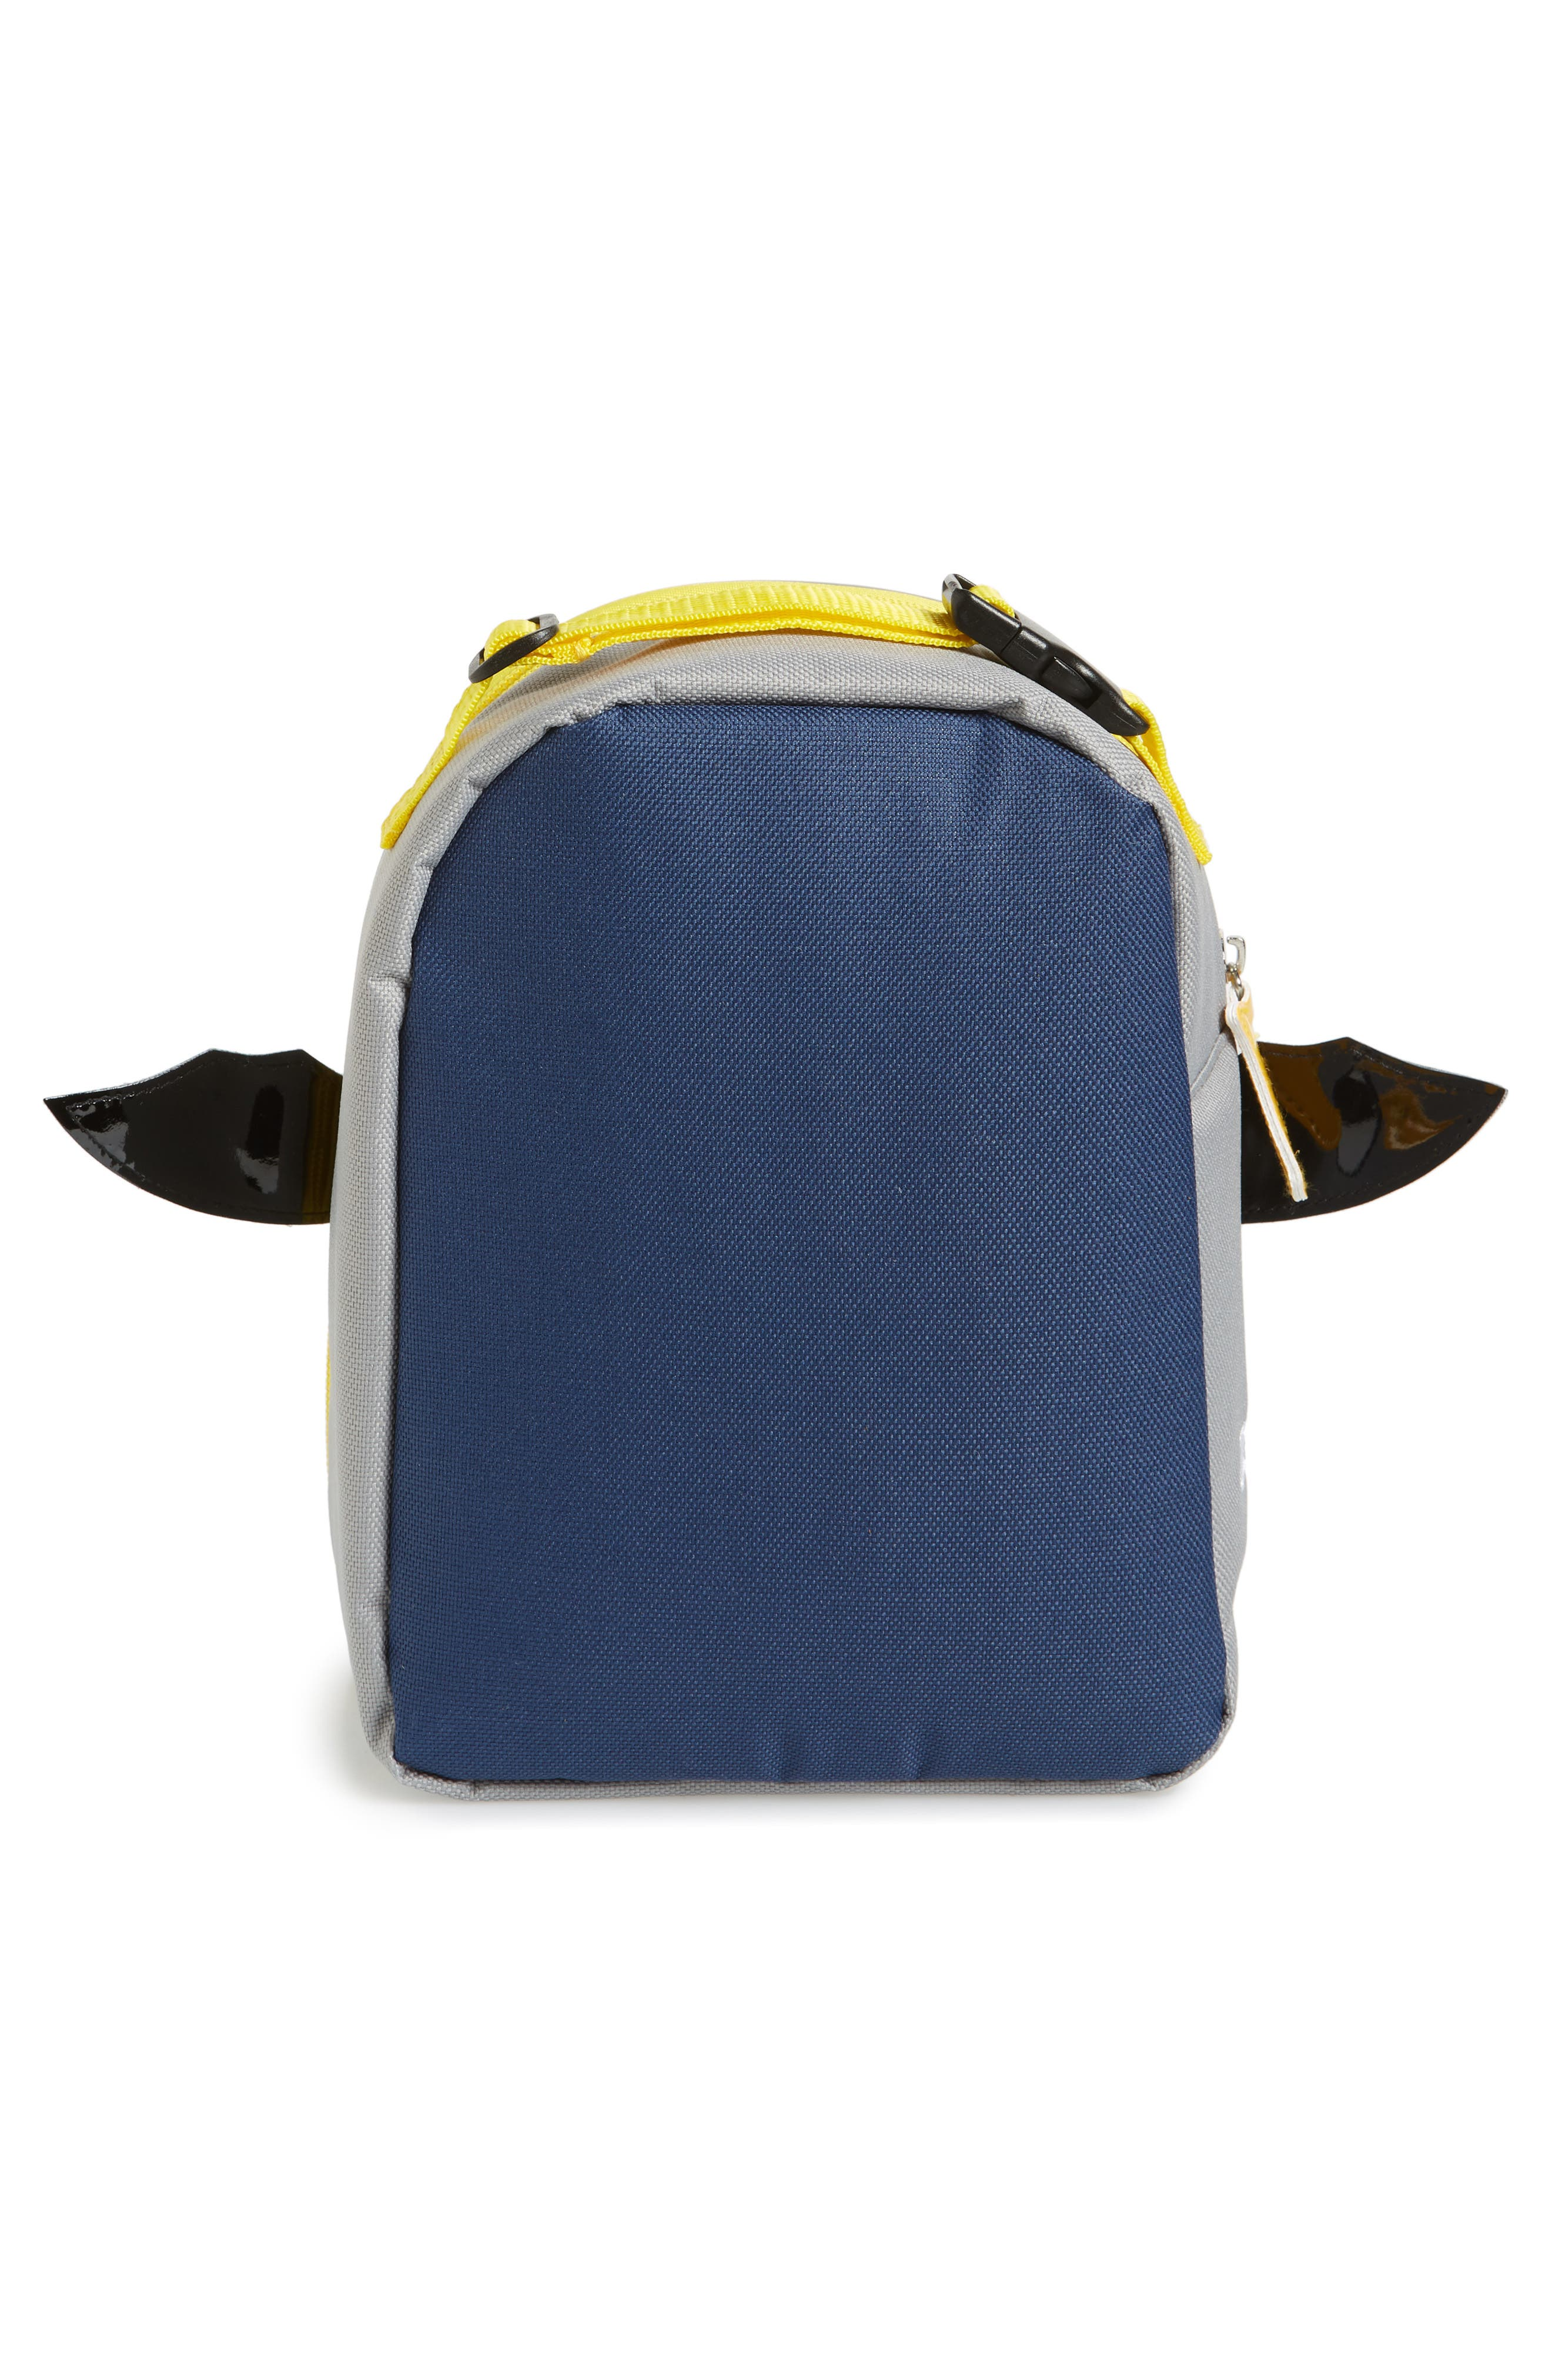 Zoo Lunch Bag,                             Alternate thumbnail 2, color,                             Navy Blue